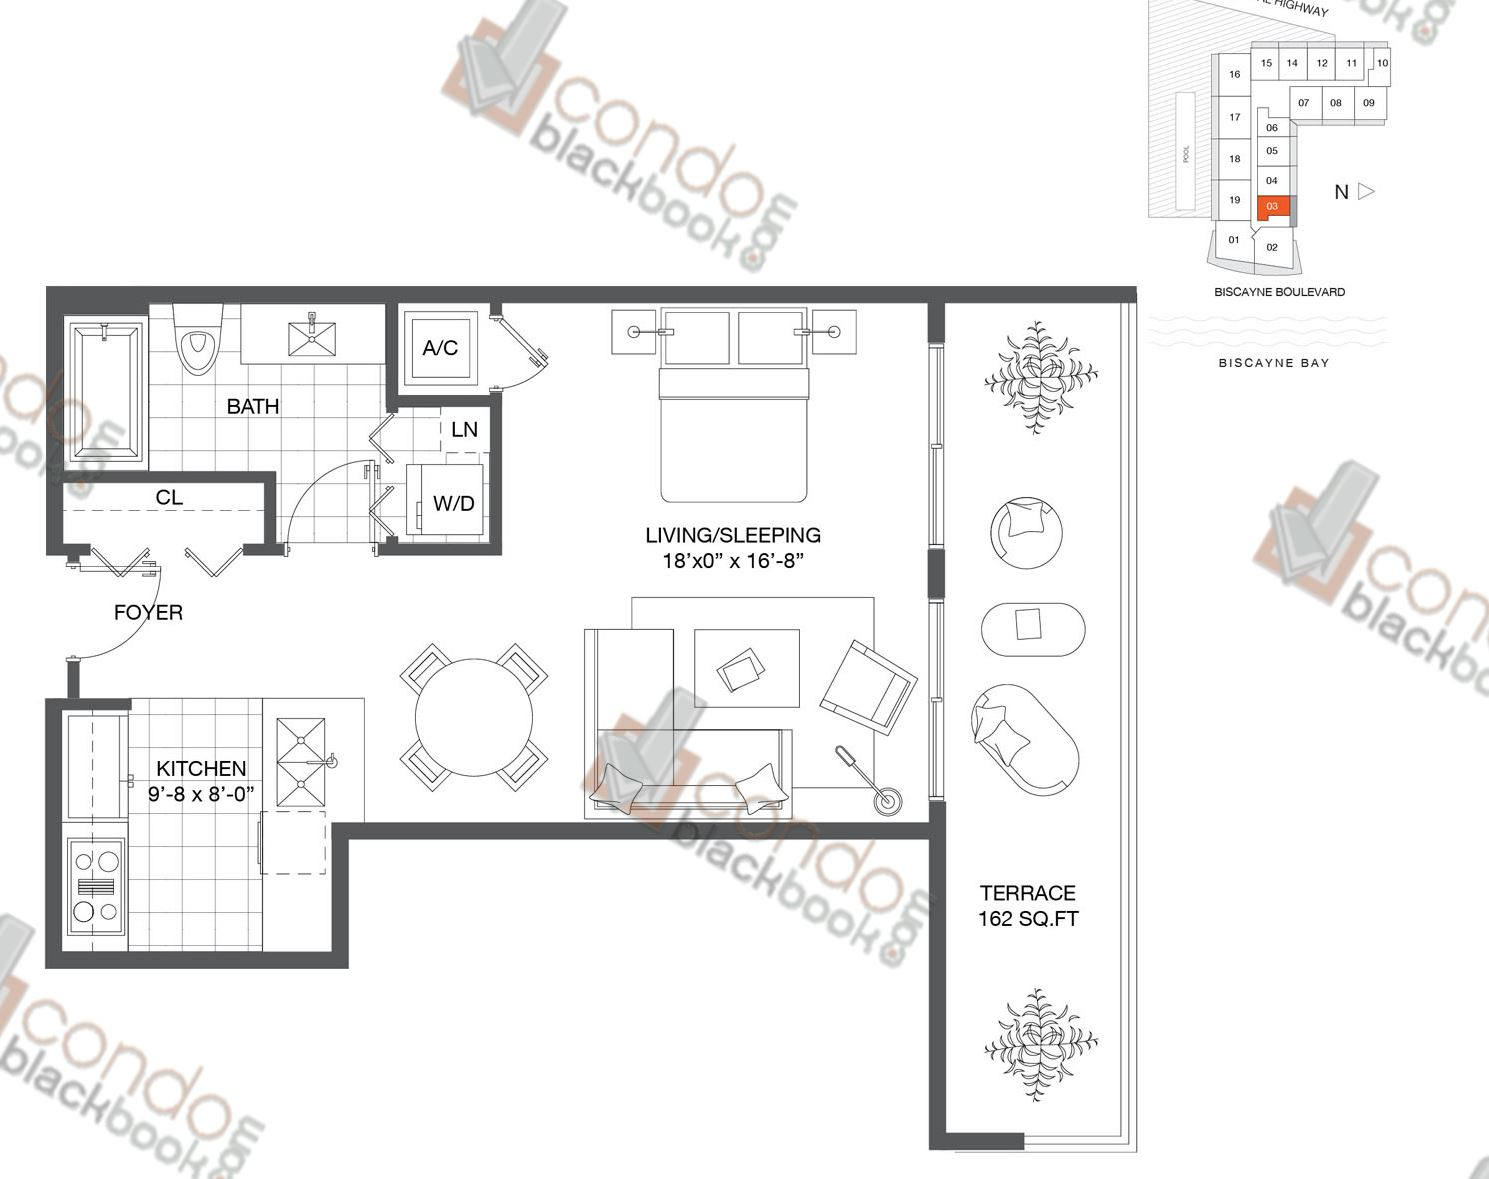 Floor plan for Baltus House Design District / Buena Vista Miami, model Residence 03, line 03, 0/1 bedrooms, 520 sq ft